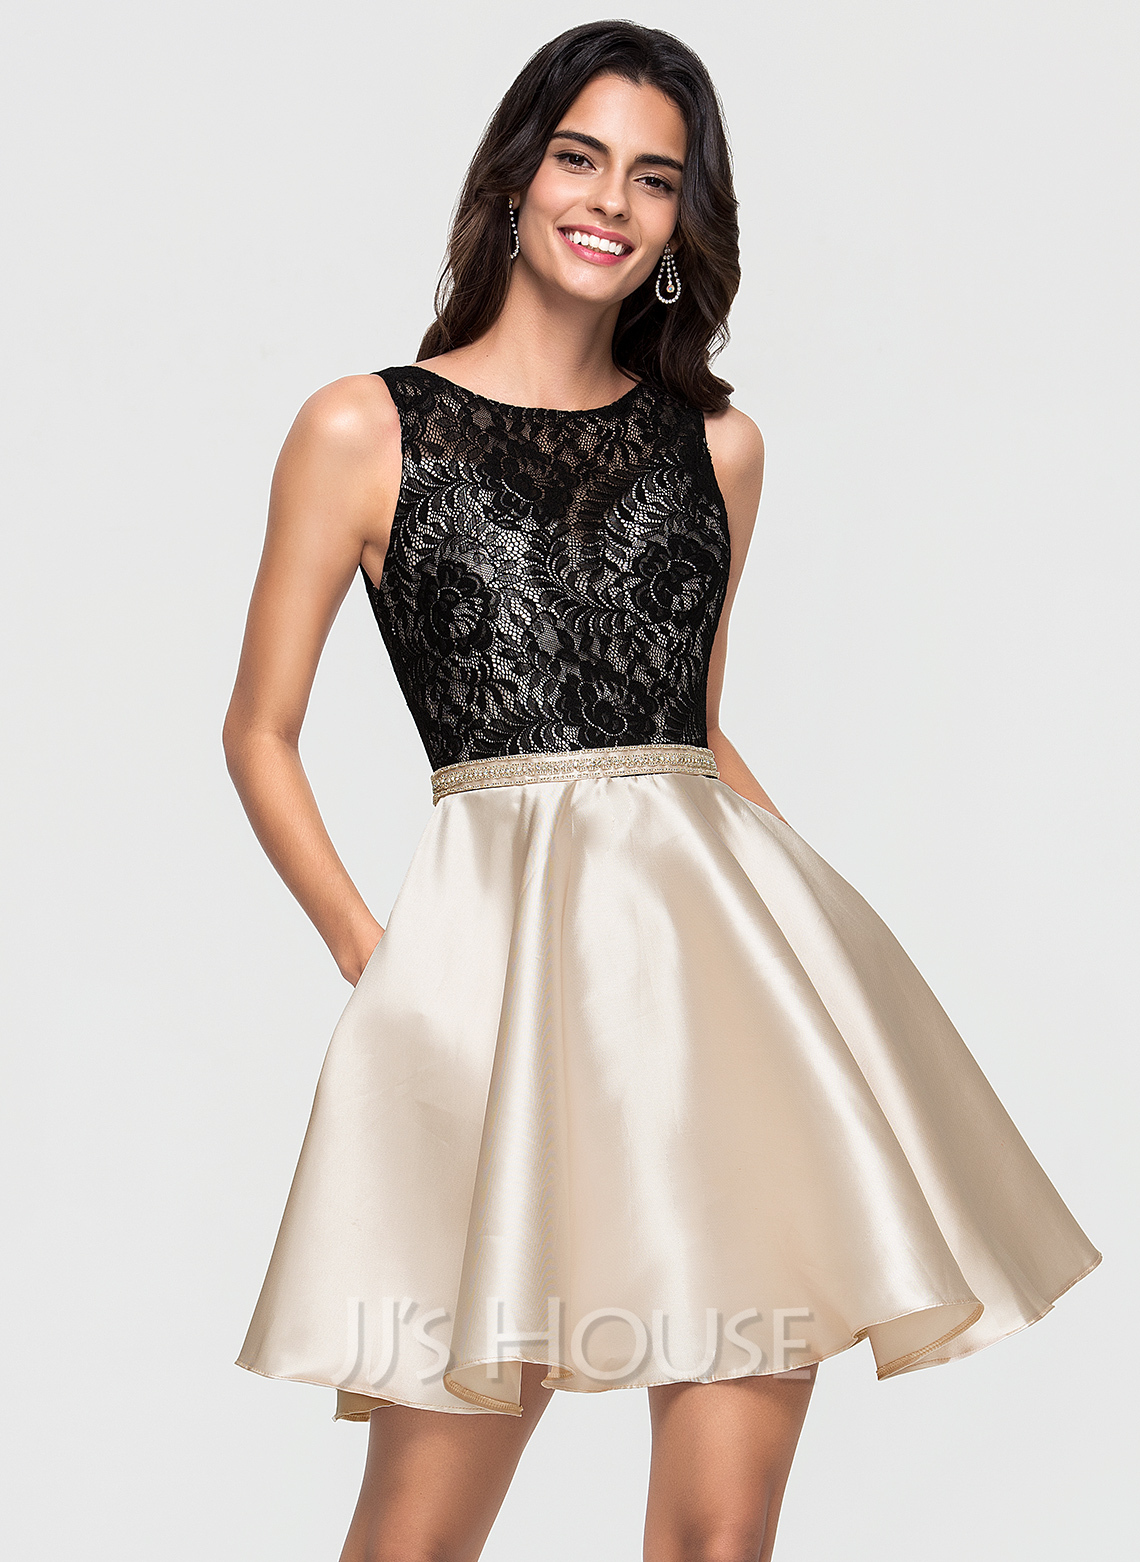 A-Line Scoop Neck Short/Mini Satin Homecoming Dress With Lace Pockets